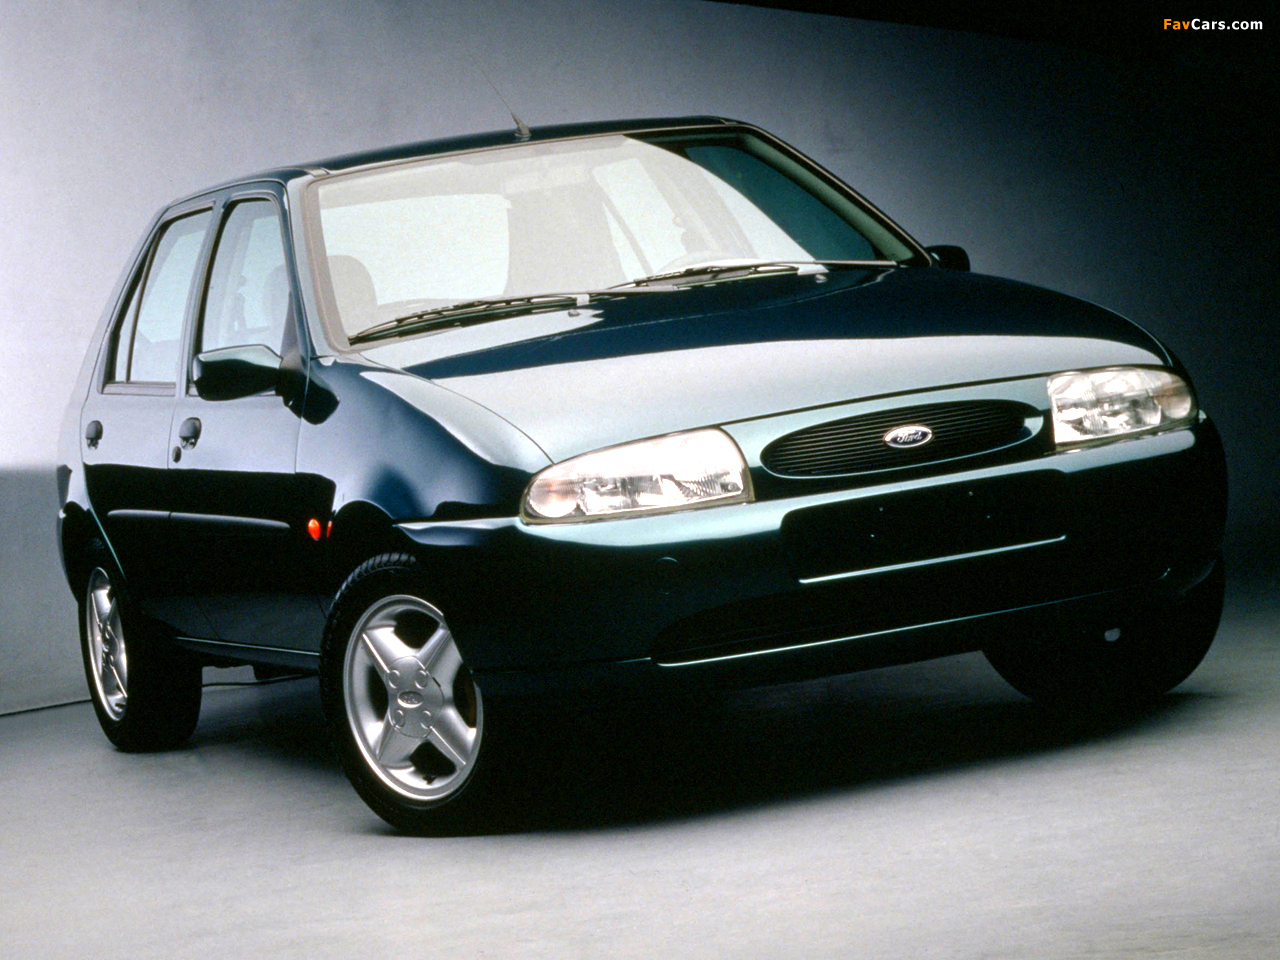 pictures of ford fiesta 5 door 1995 99 1280x960. Black Bedroom Furniture Sets. Home Design Ideas